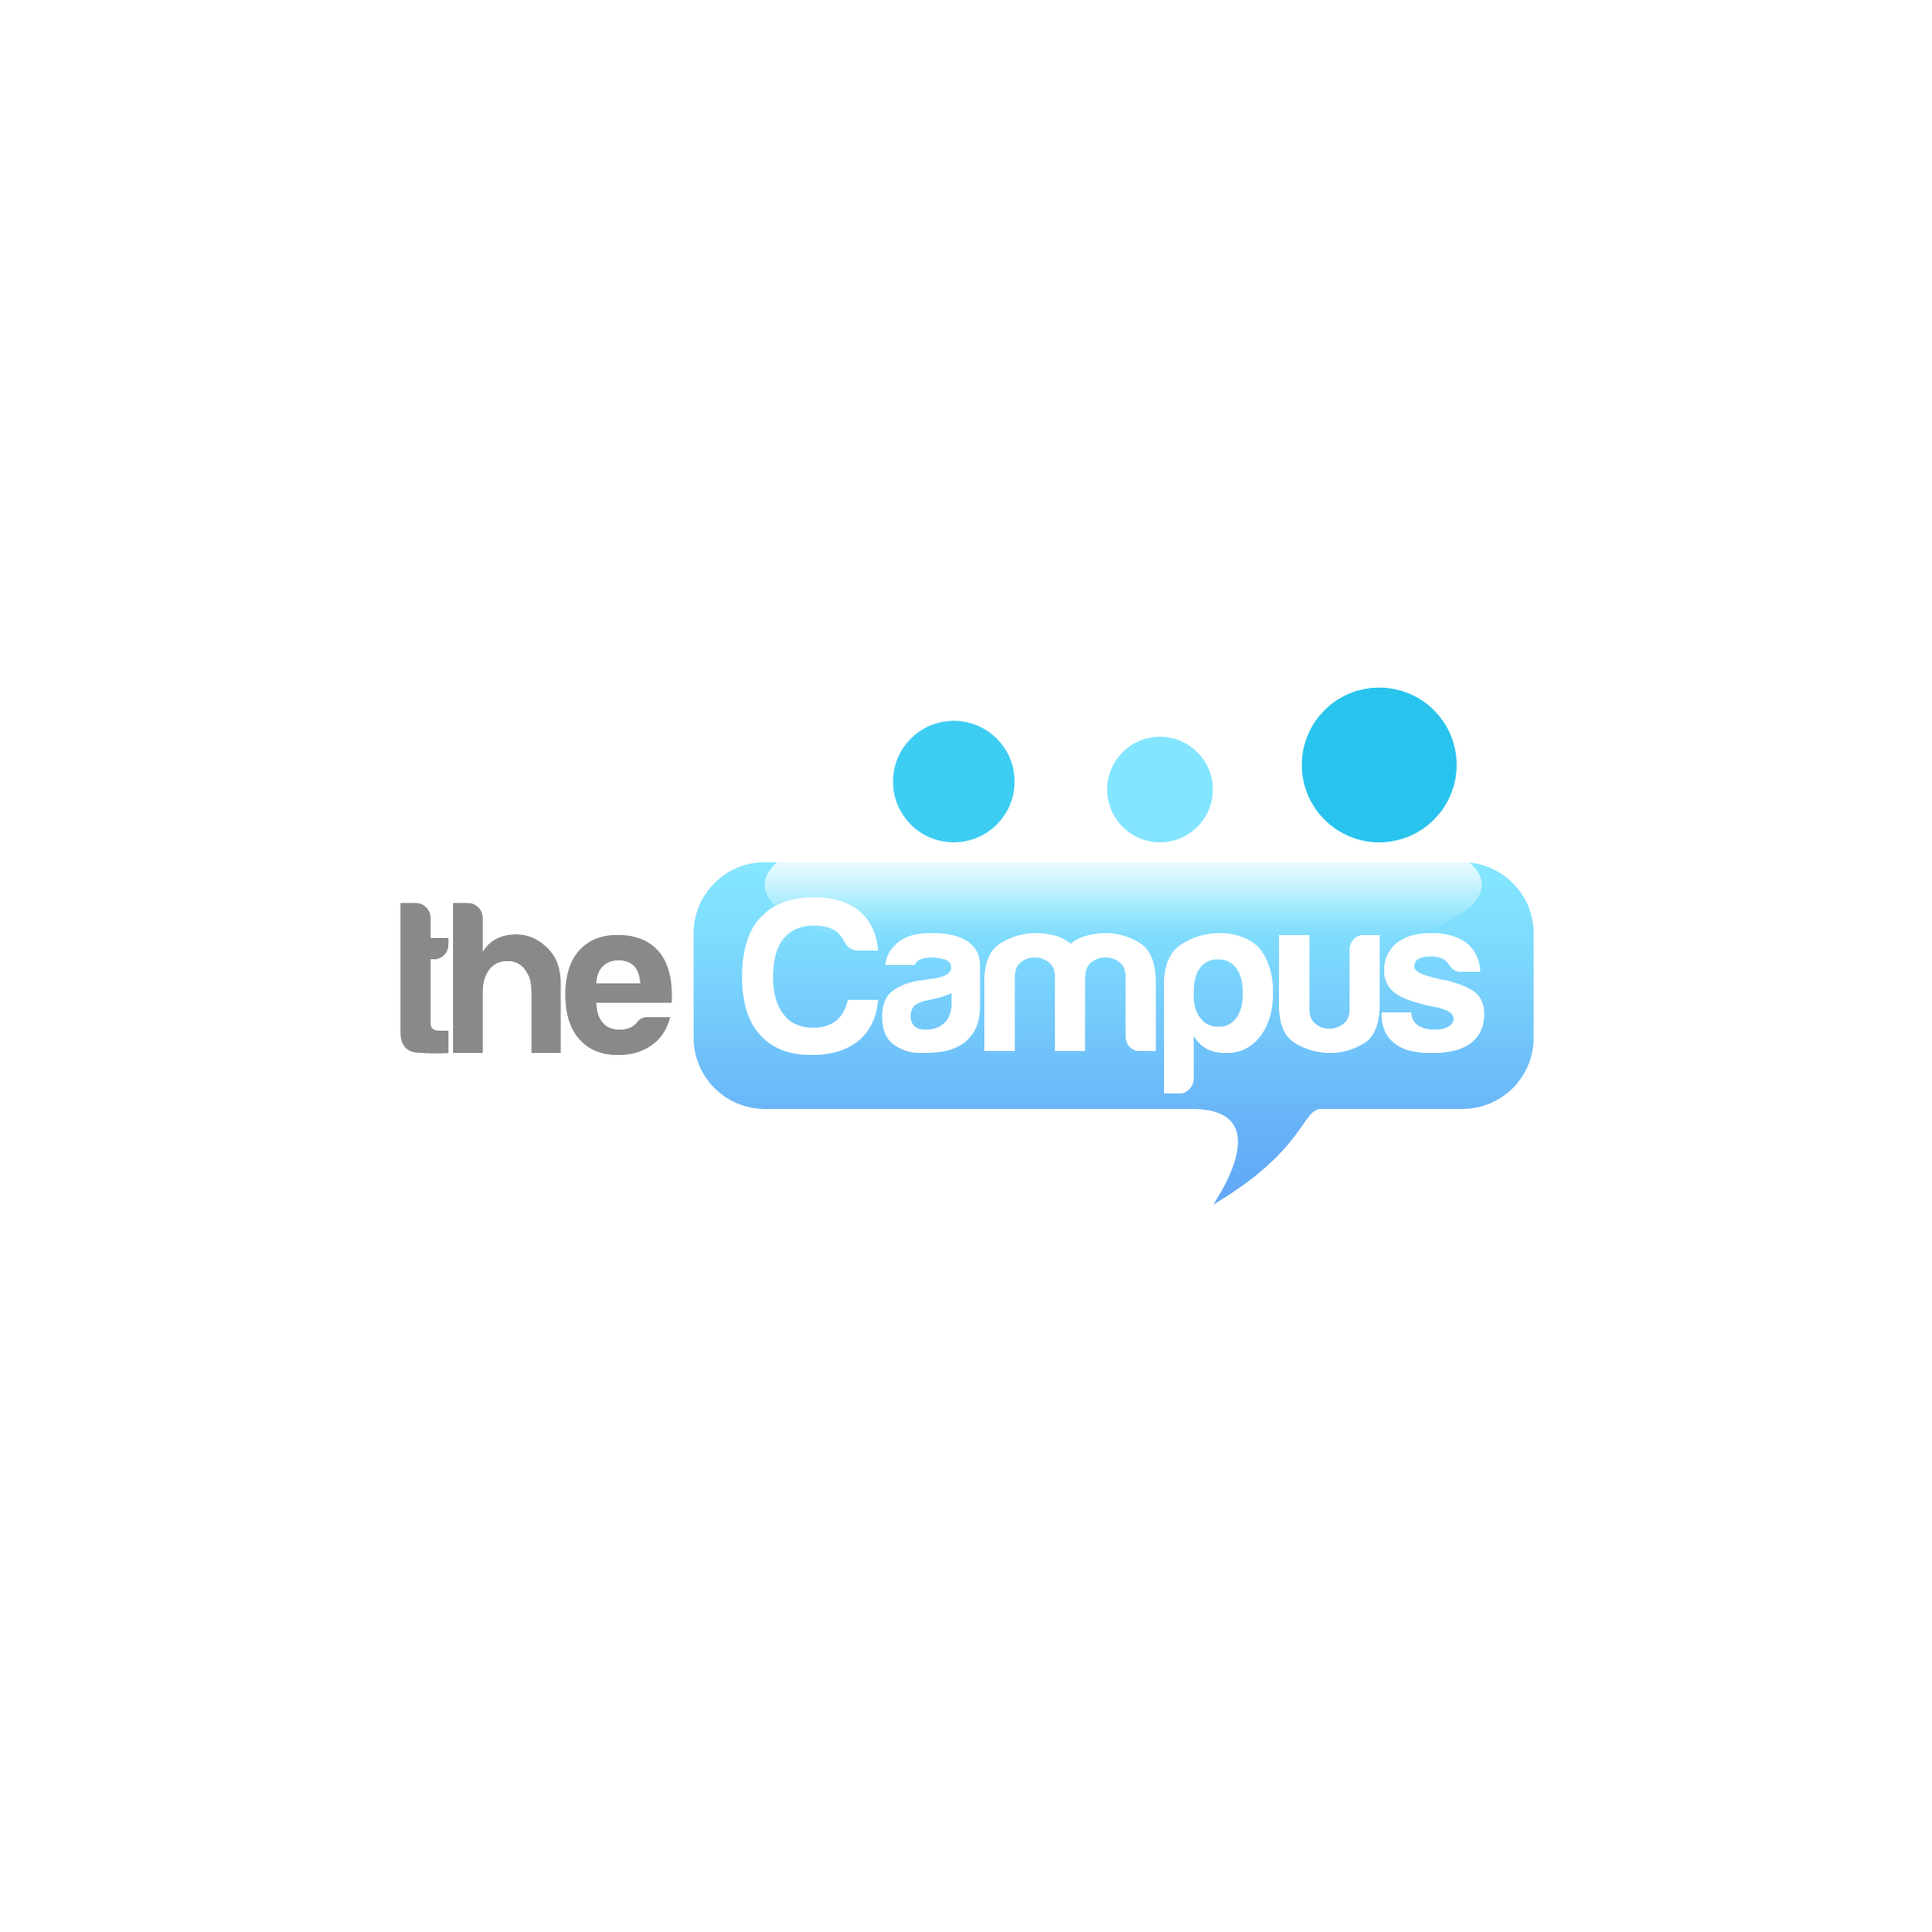 Logo Design by Kenneth Joel - Entry No. 18 in the Logo Design Contest theCampus Logo Design.